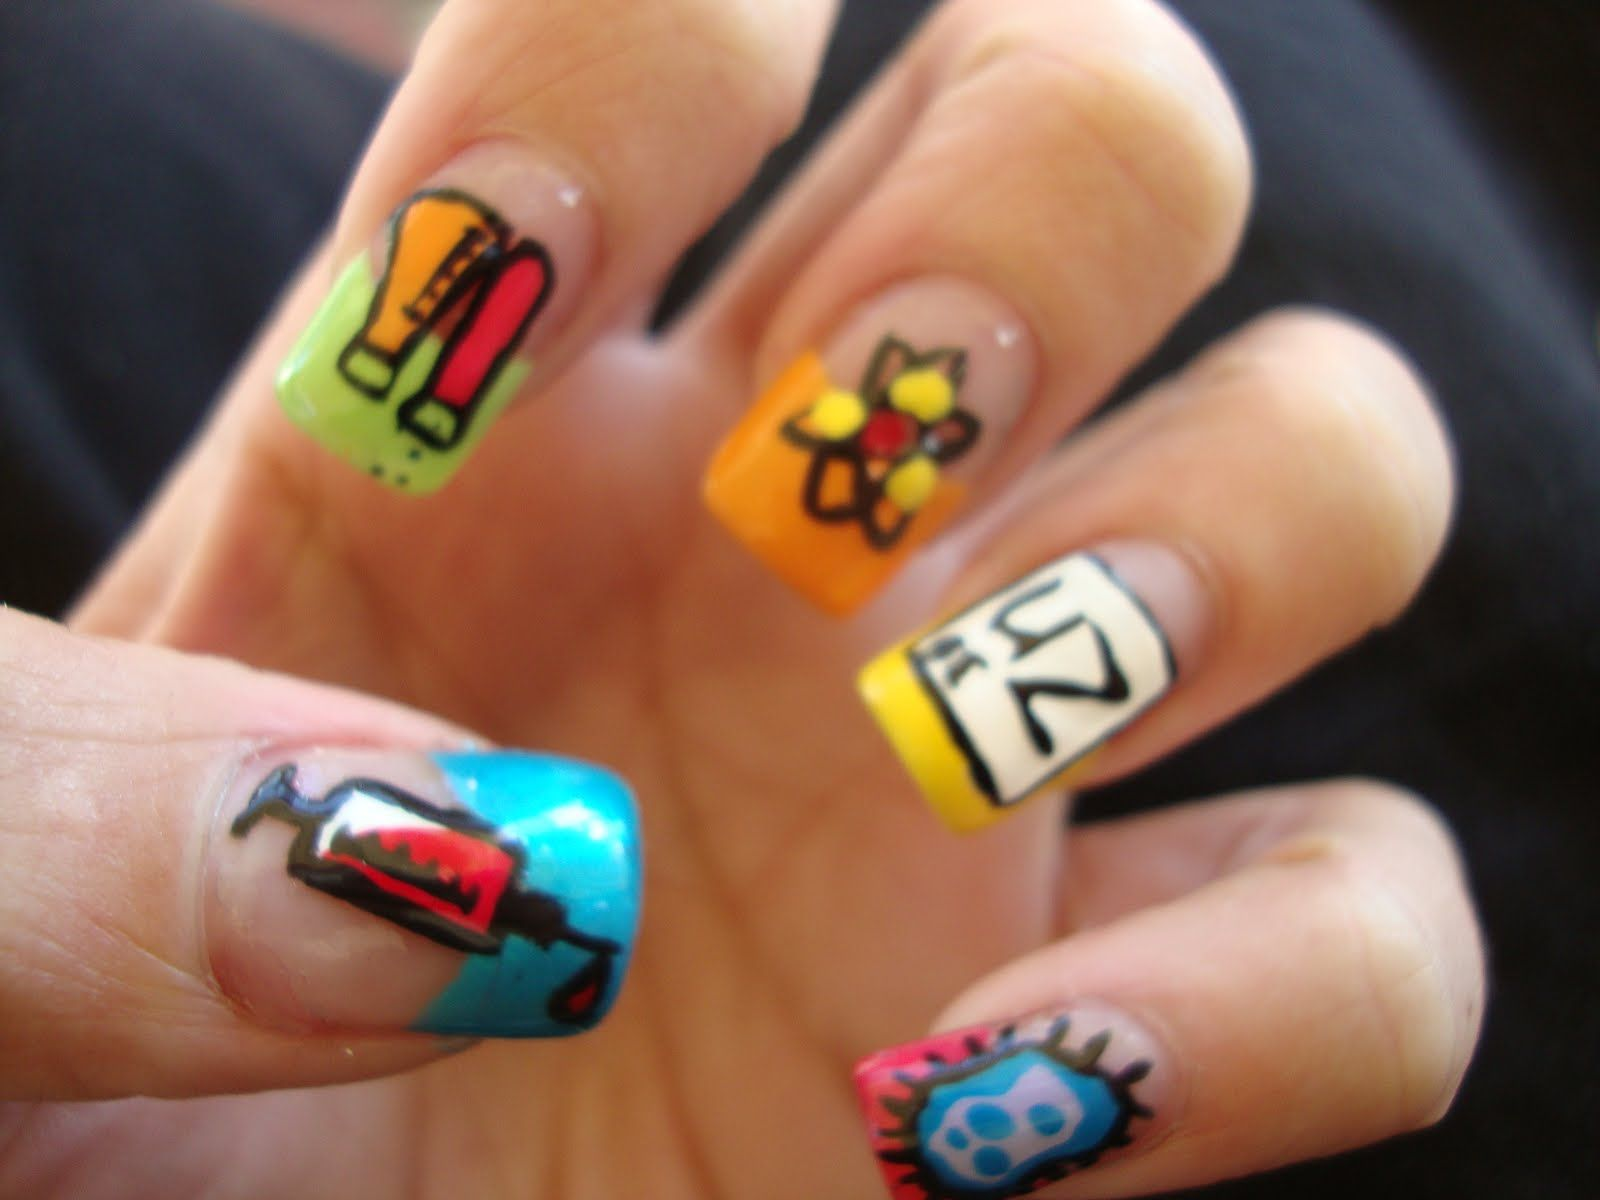 hotgelnaildesignsphotos cartoon nail art designs - Hot Designs Nail Art Ideas